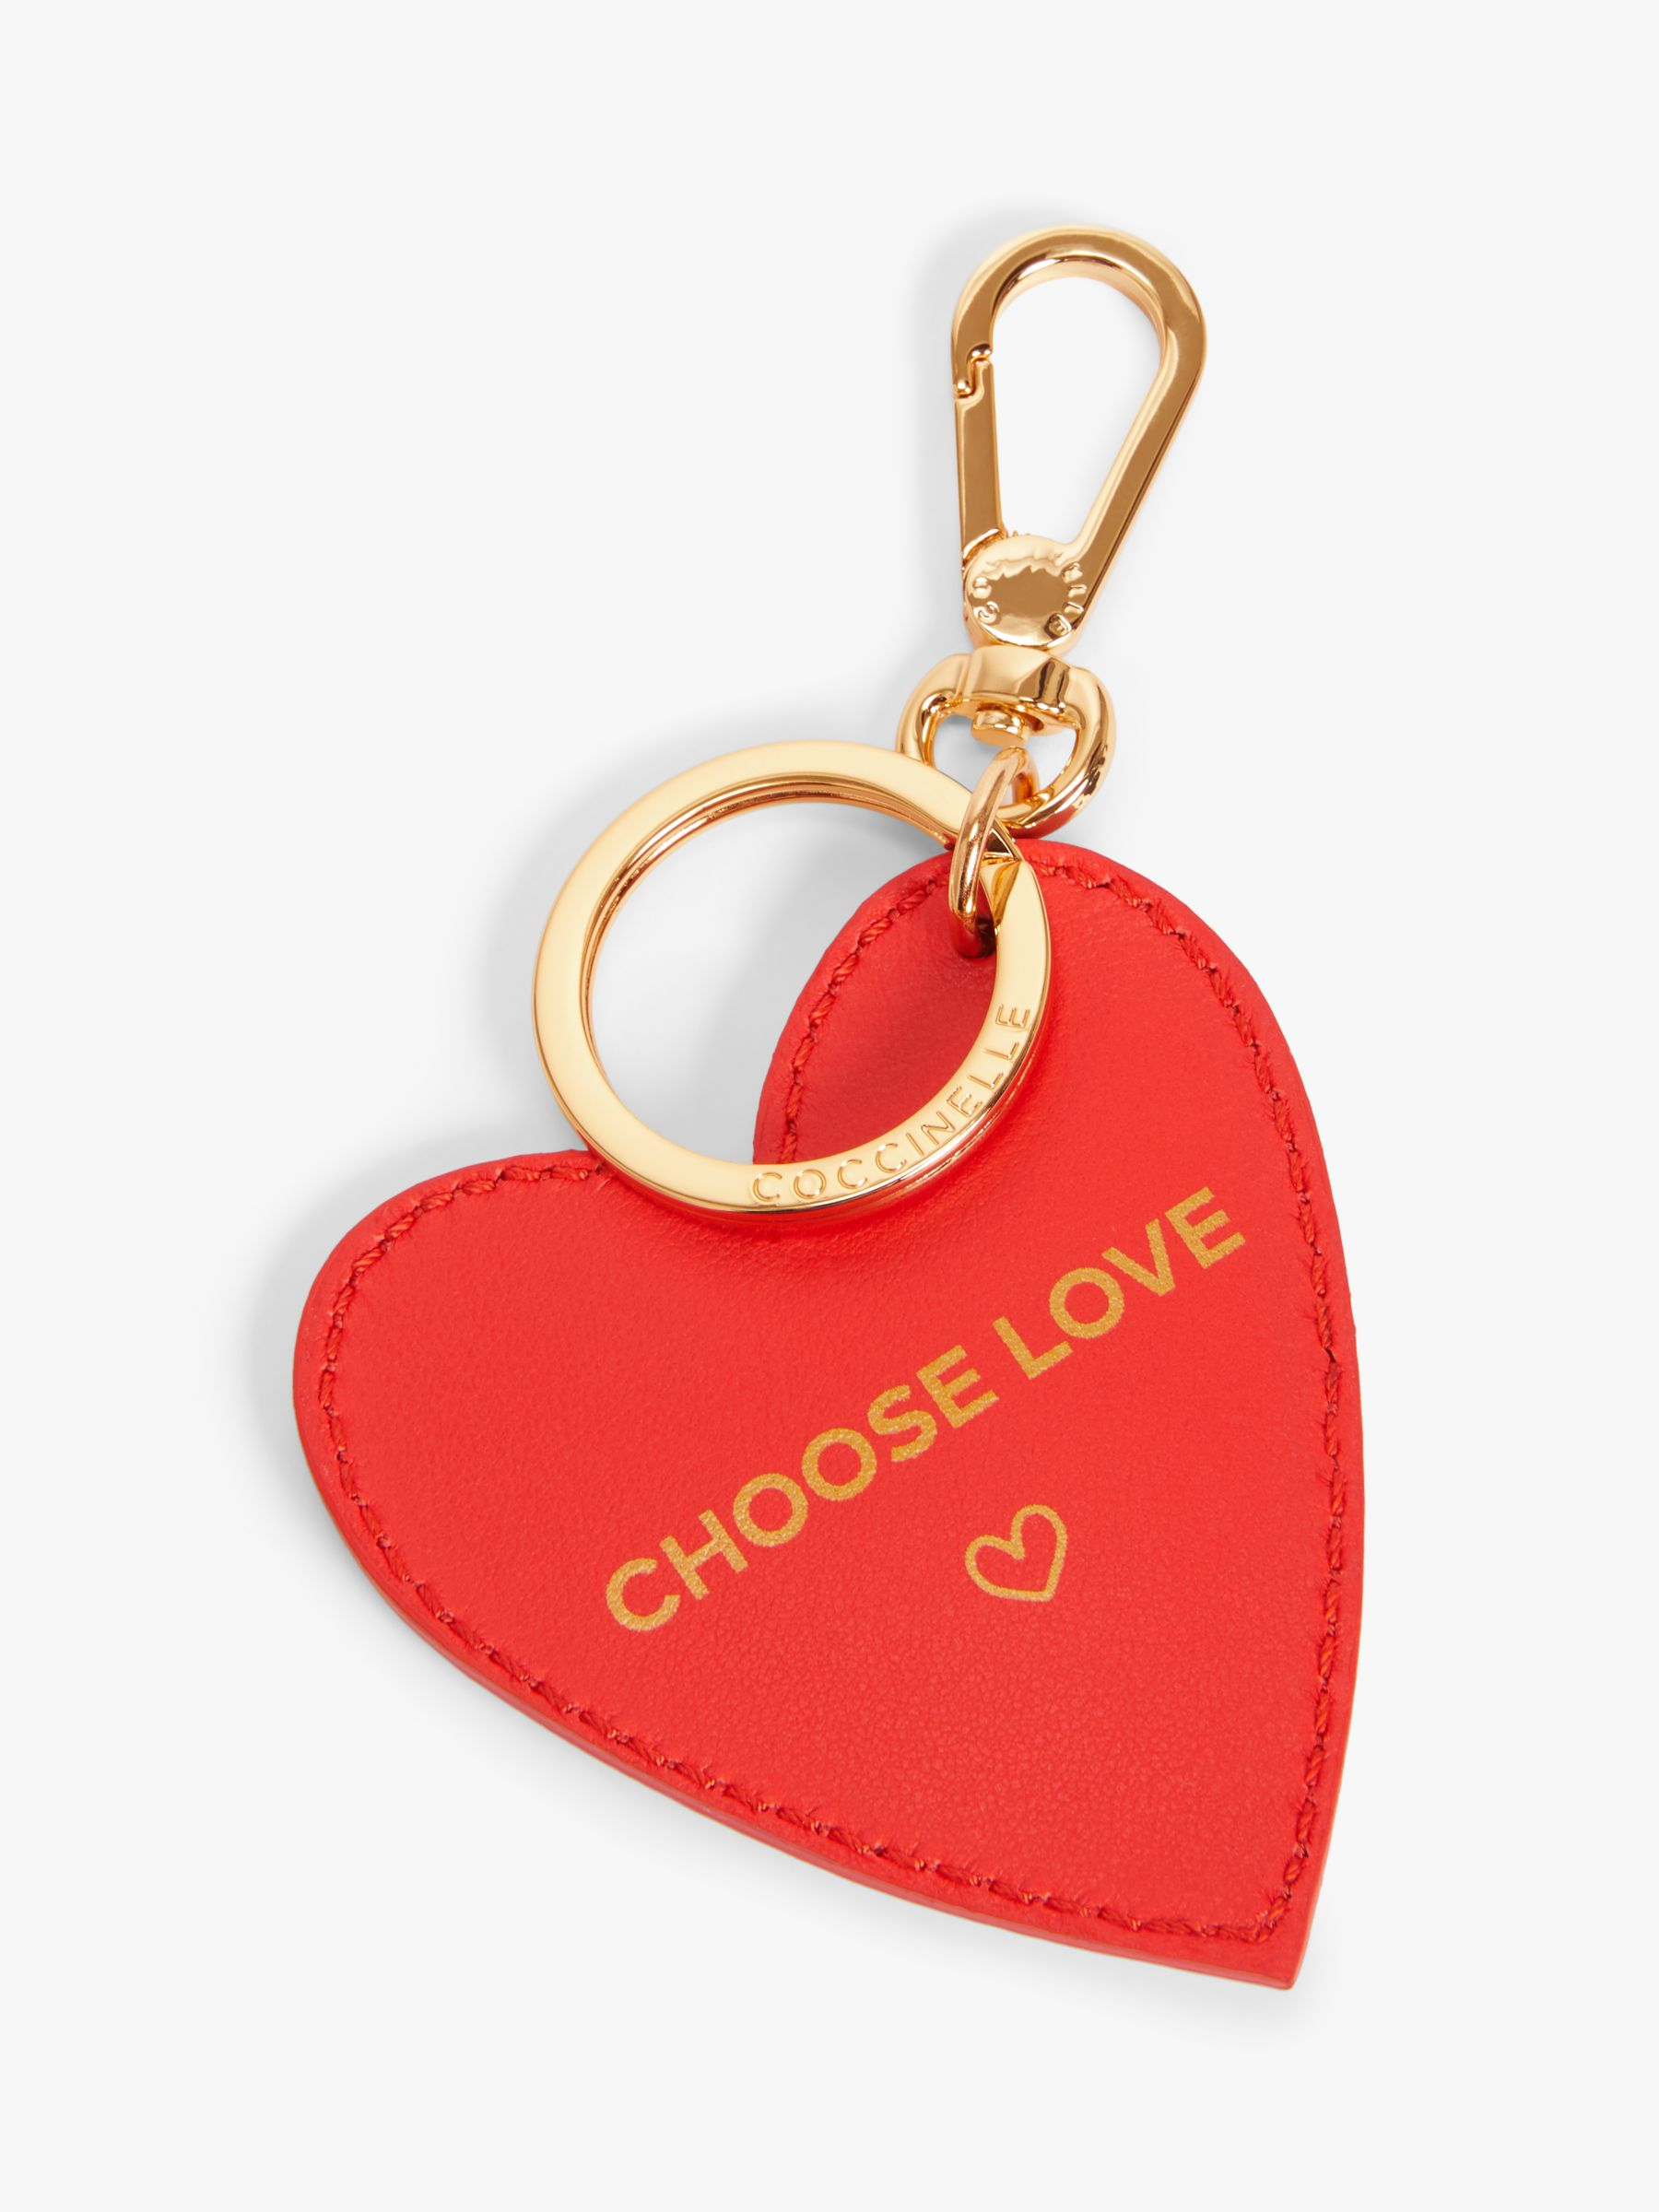 Coccinelle Coccinelle Charm Road Leather Choose Love Heart Keyring, Red